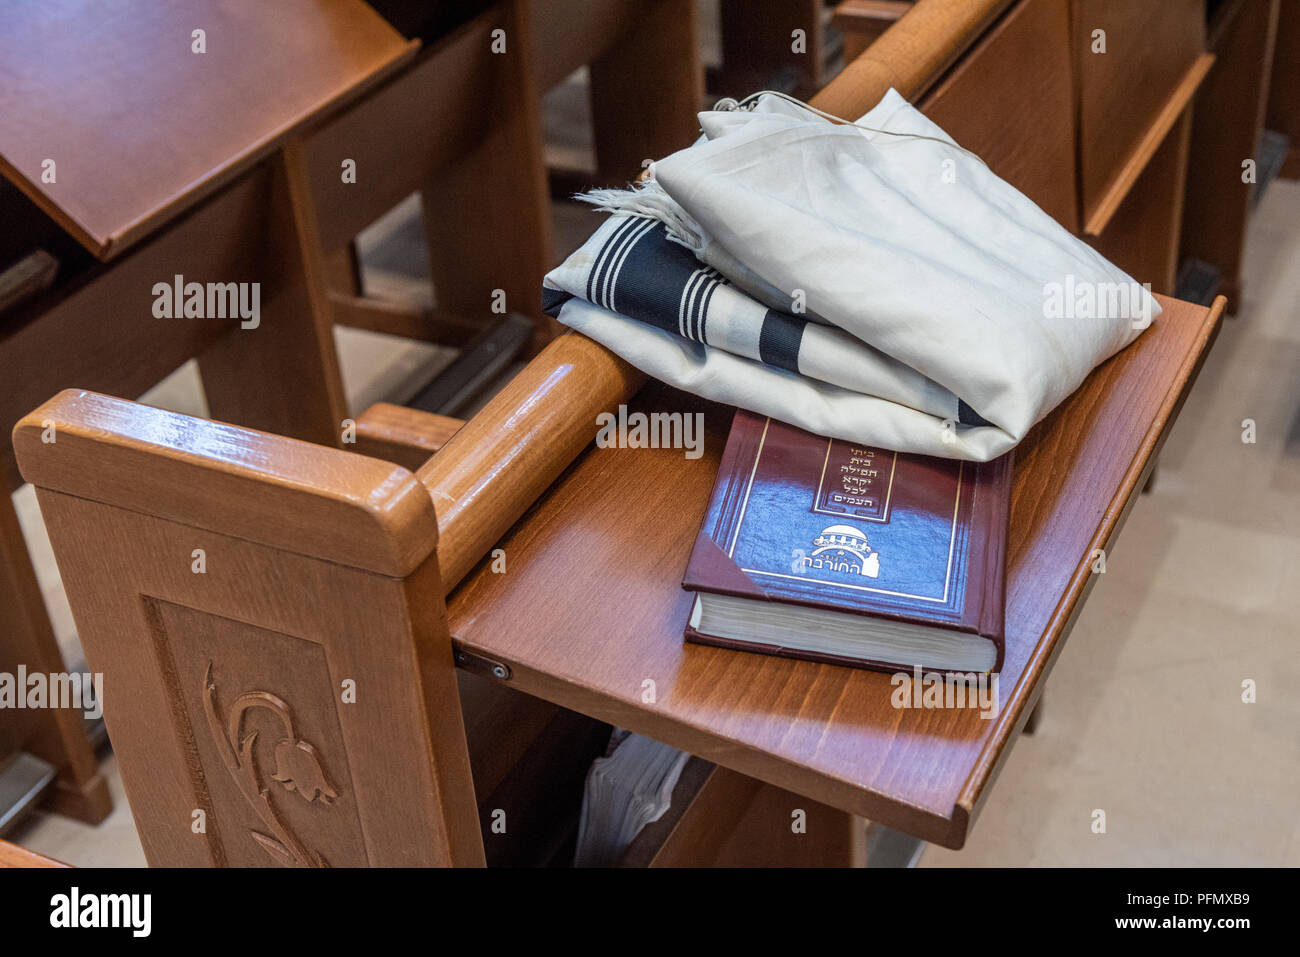 Israel, Jerusalem - 16 August 2018: Siddur and tallit in the Hurva synagogue - Stock Image